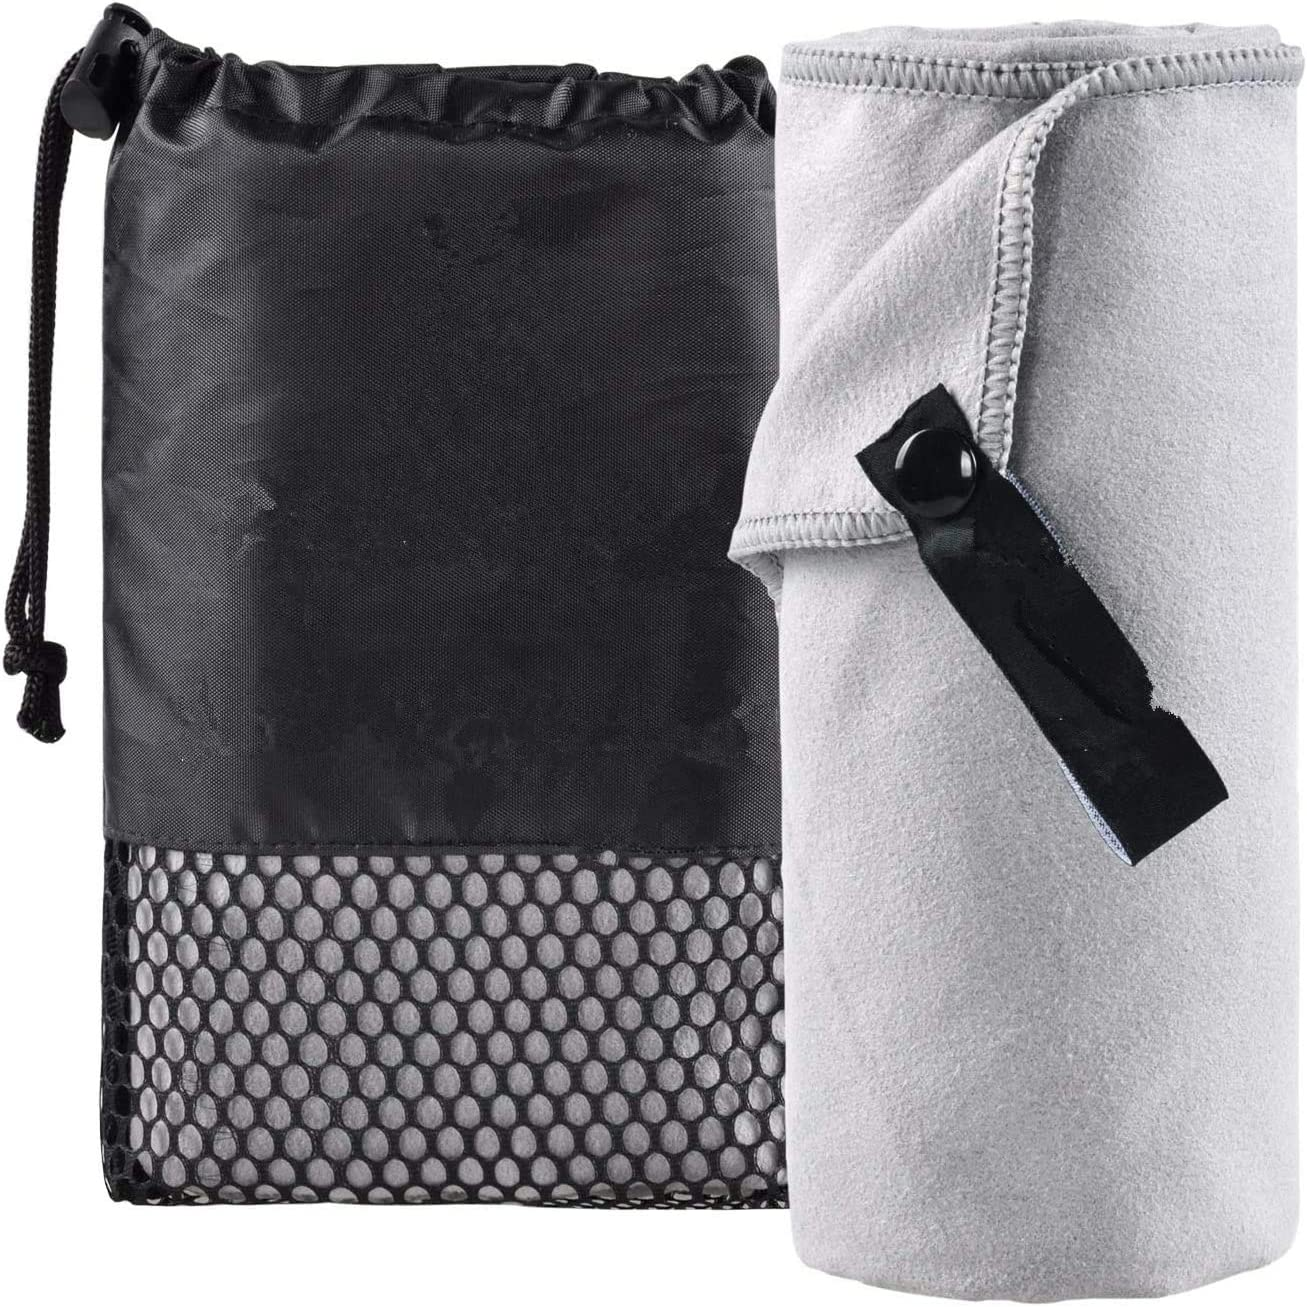 Idea2go Microfiber Travel Towel, Fast Drying Towel for Travel, Beach,Yoga, Golf, Gym,Camping, Backpacking, Hiking, Sports and Swimming. Sweat Absorbent, Lightweight and Ultra Compact: Home & Kitchen